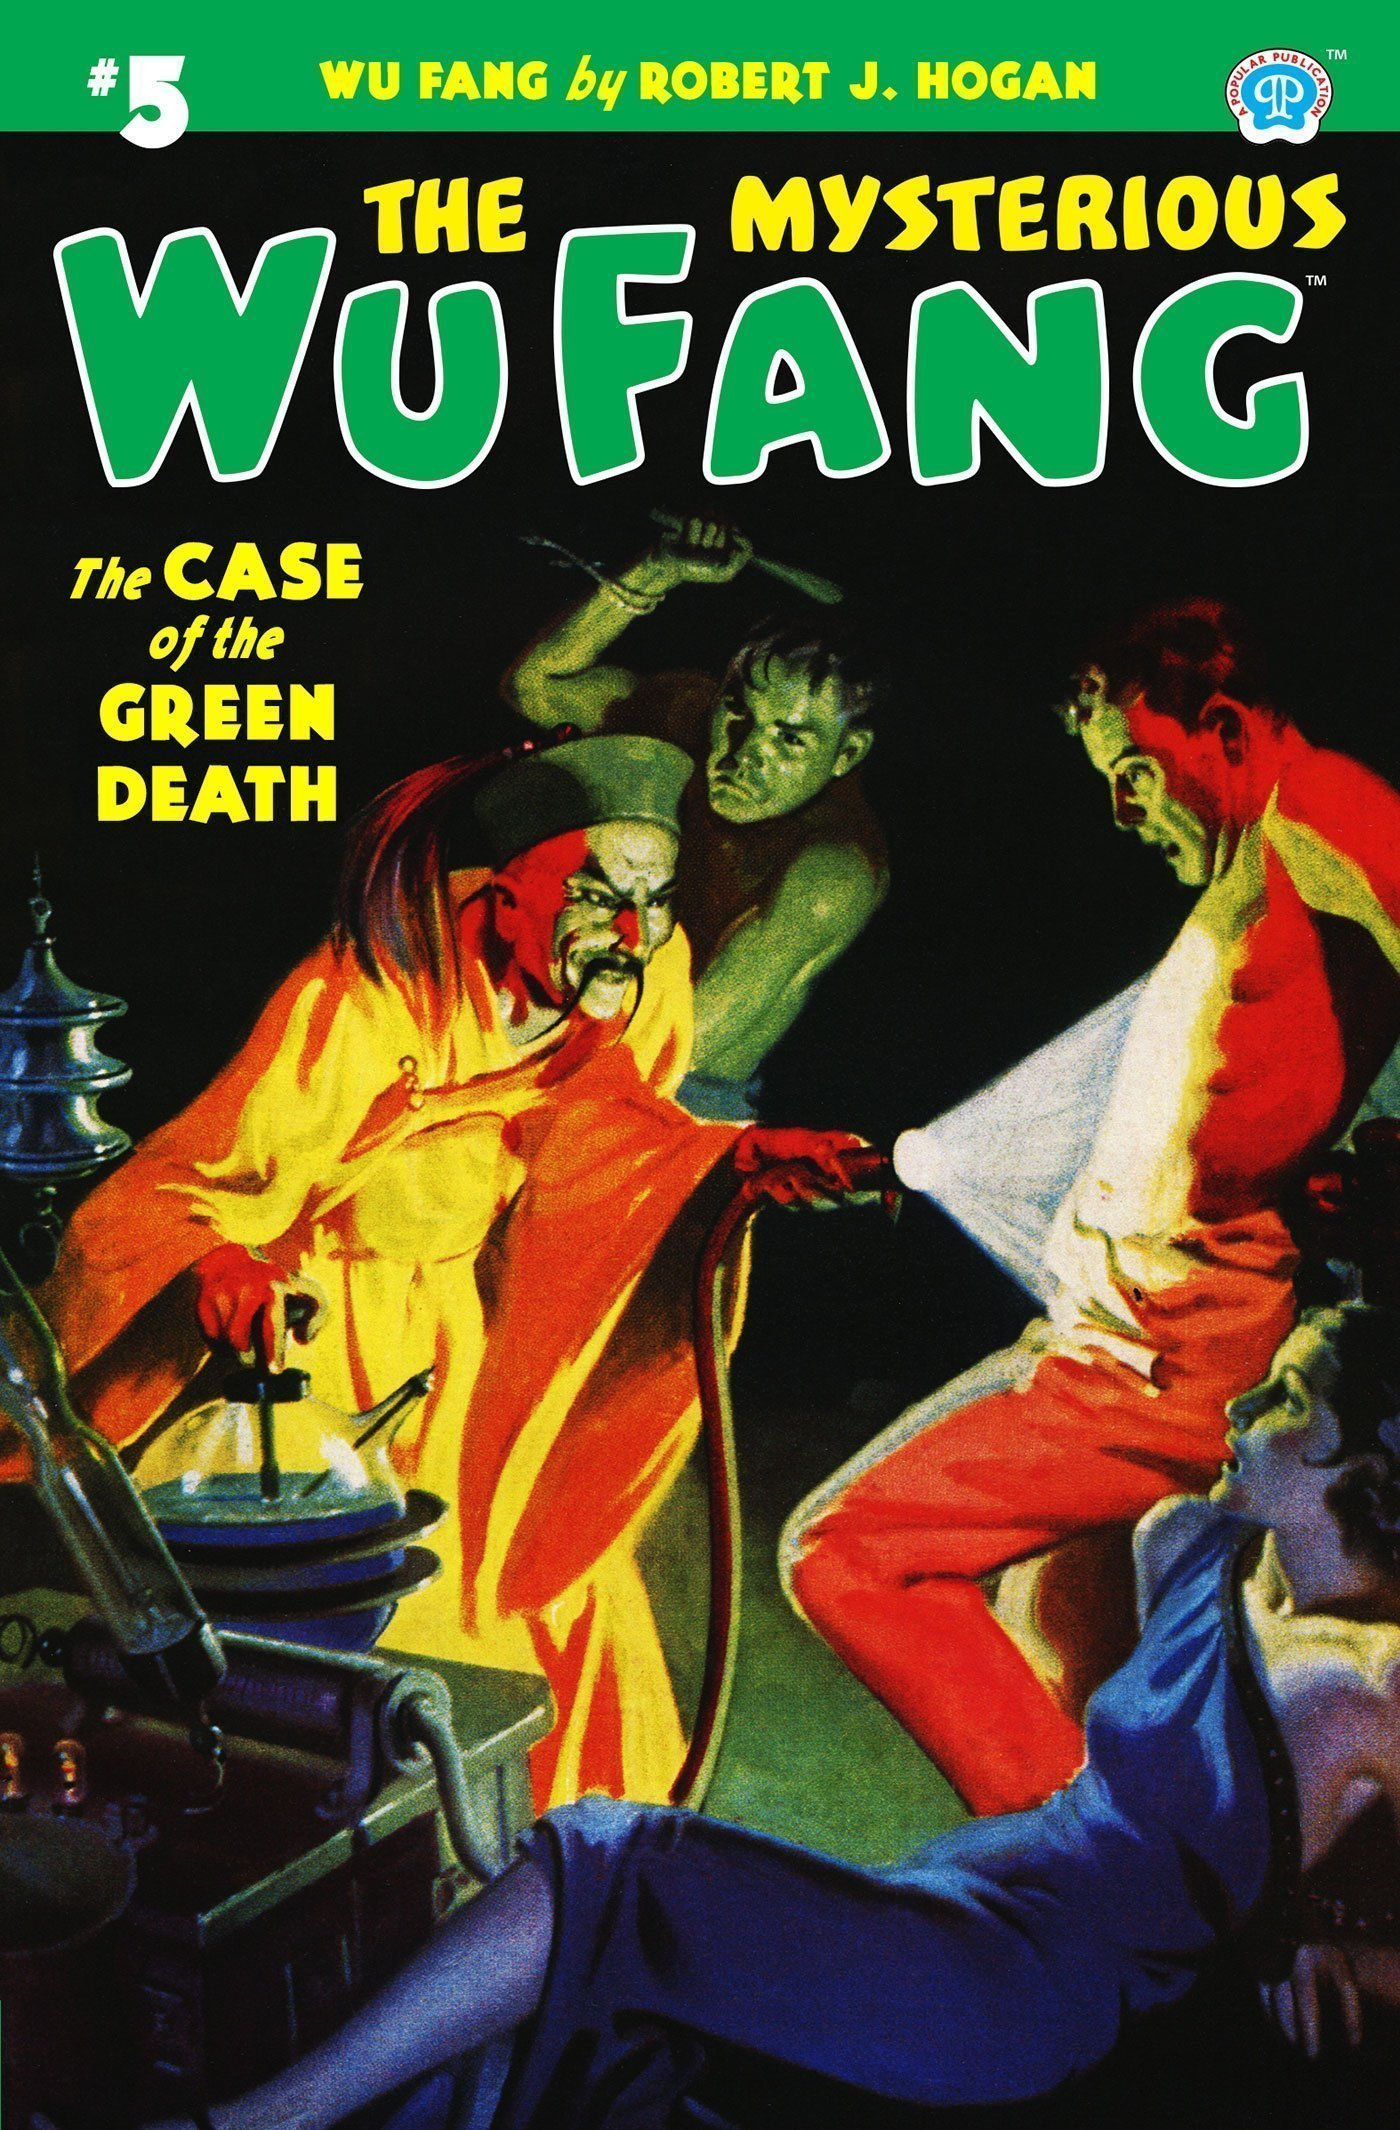 The Mysterious Wu Fang #5: The Case of the Green Death